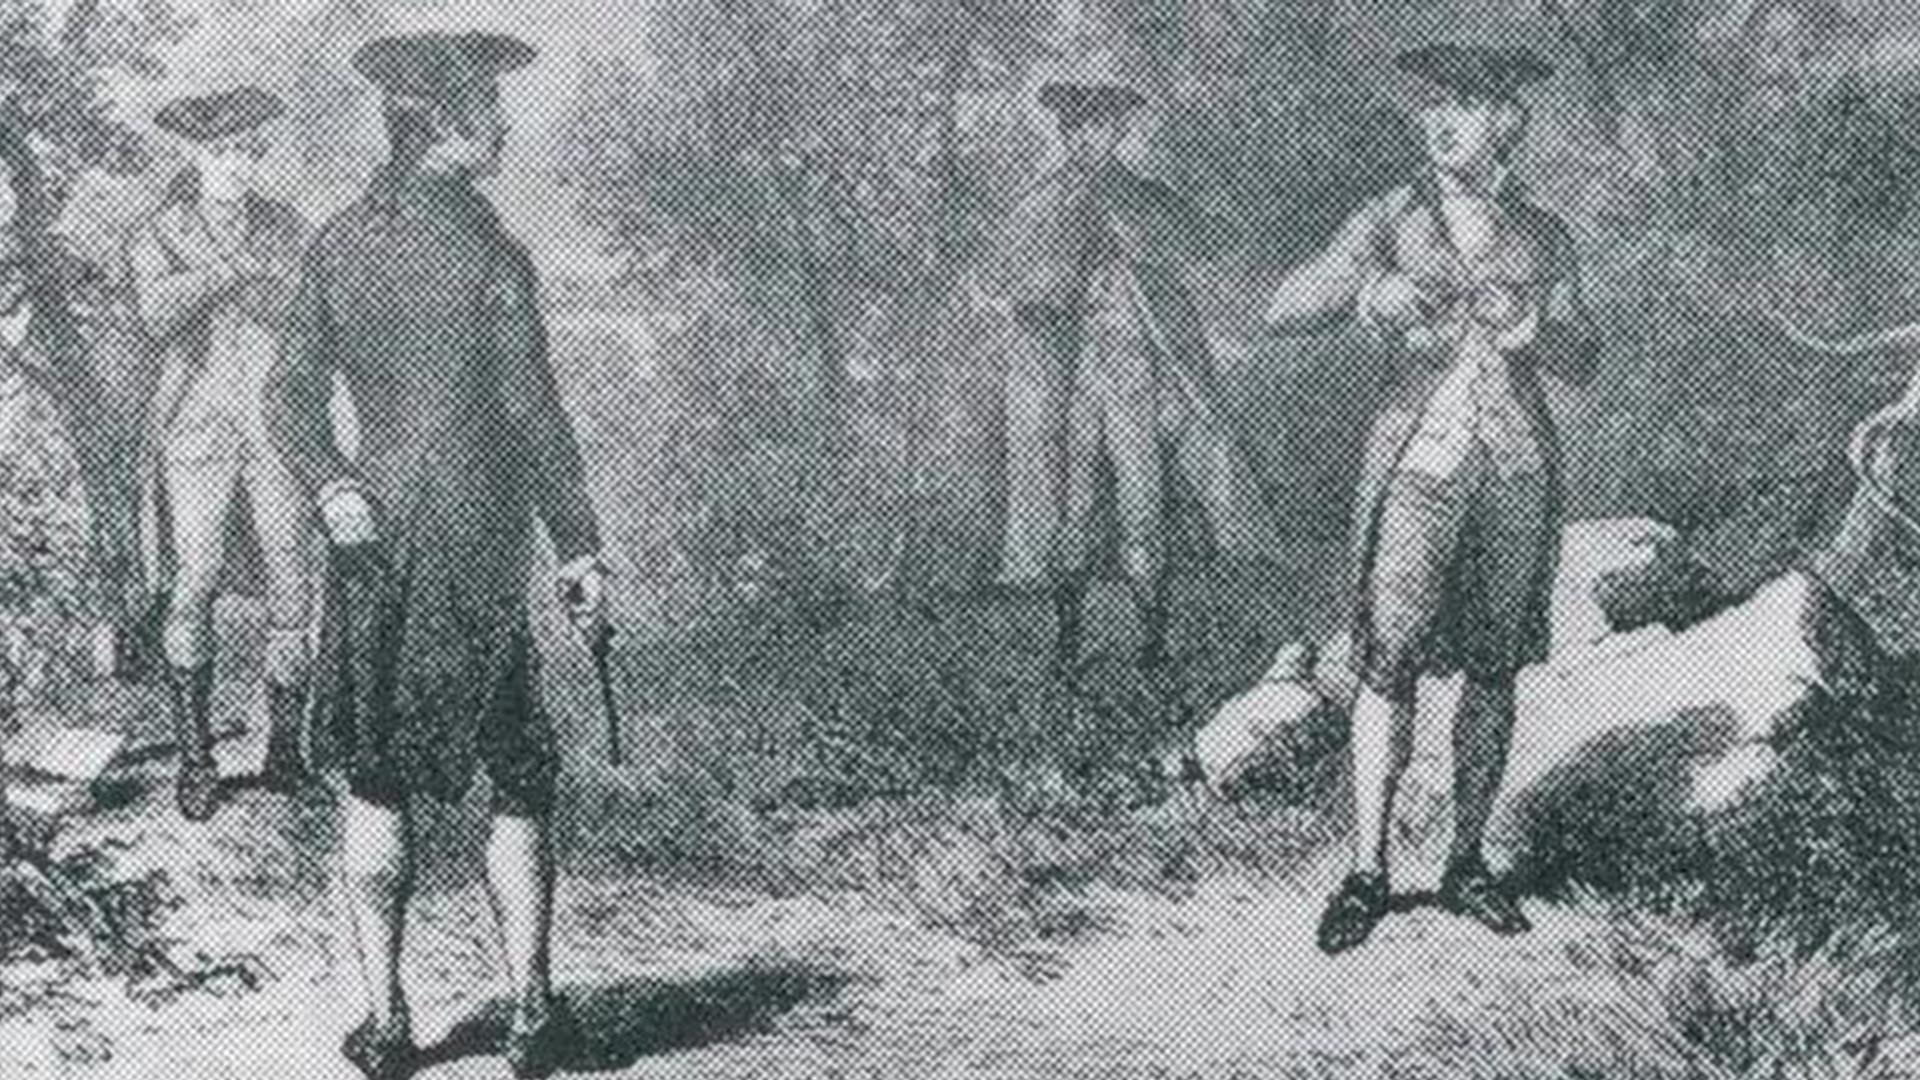 effects of hamilton burr duel Burr may have hoped that hamilton would apologize, but the communication between the men escalated until a duel was unavoidable on july 11, 1804, on the dueling grounds at weehawken, new jersey.